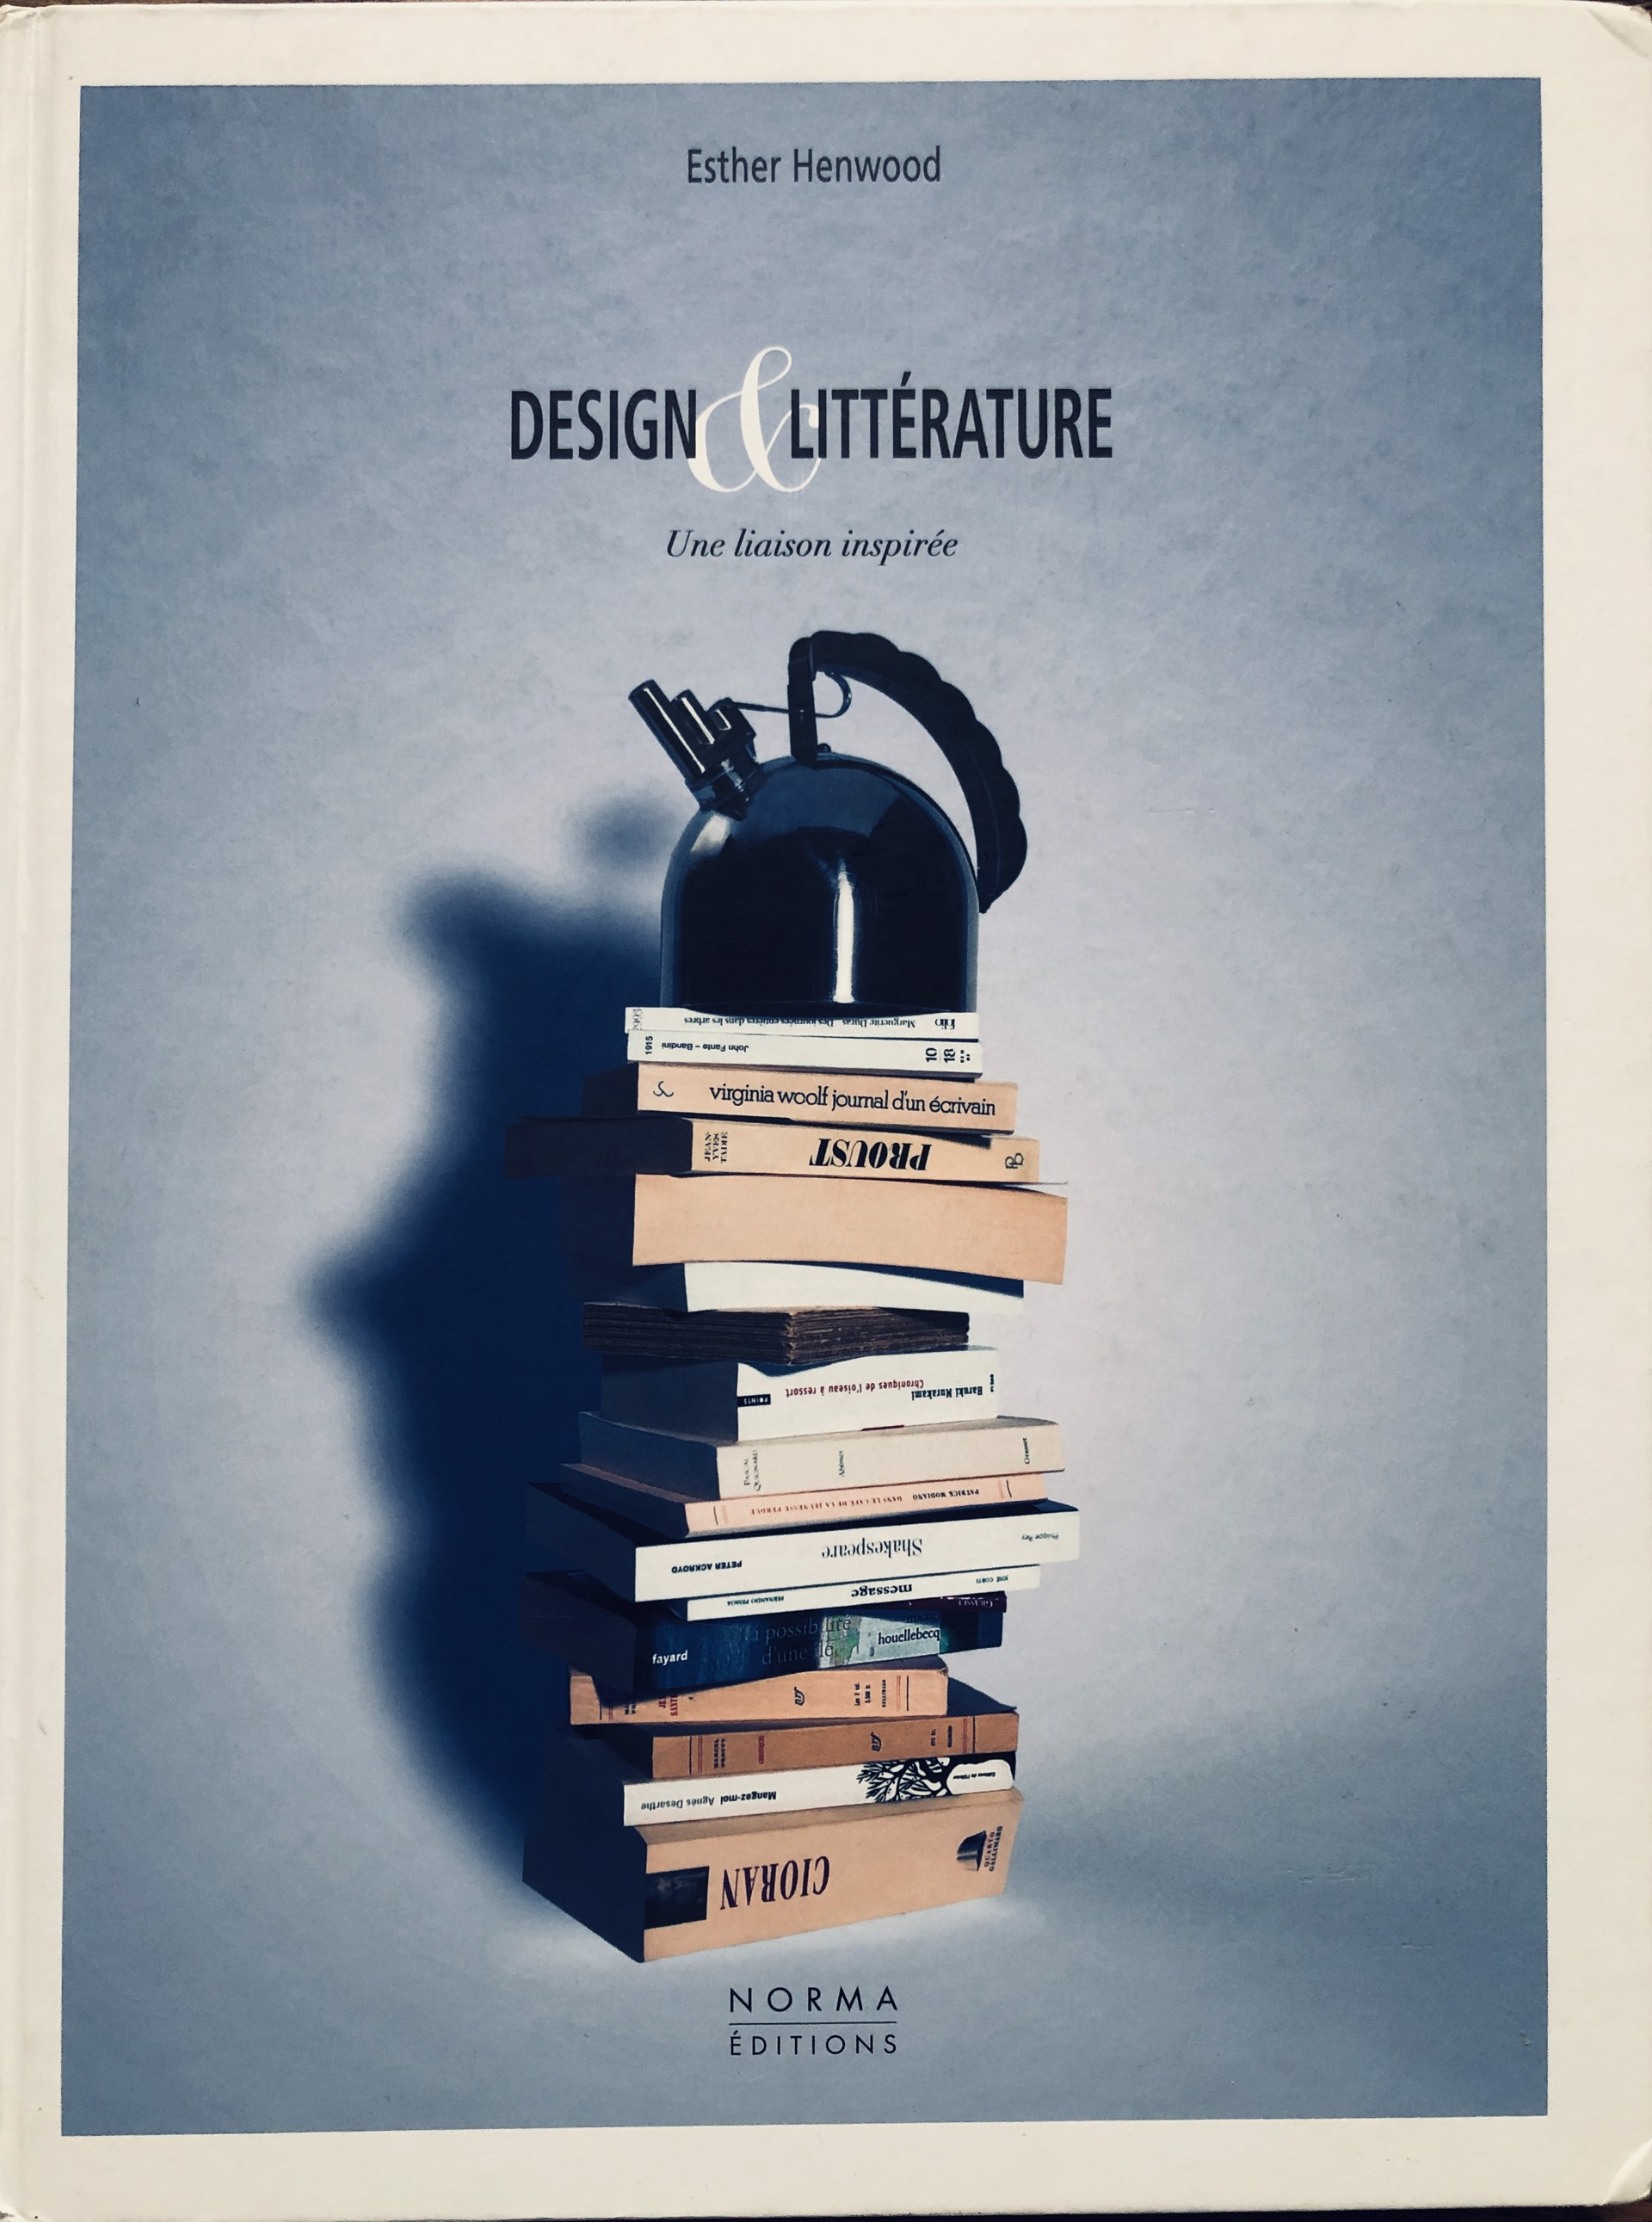 Jacques Jarrige, Design & Litterature by Esther Henwood